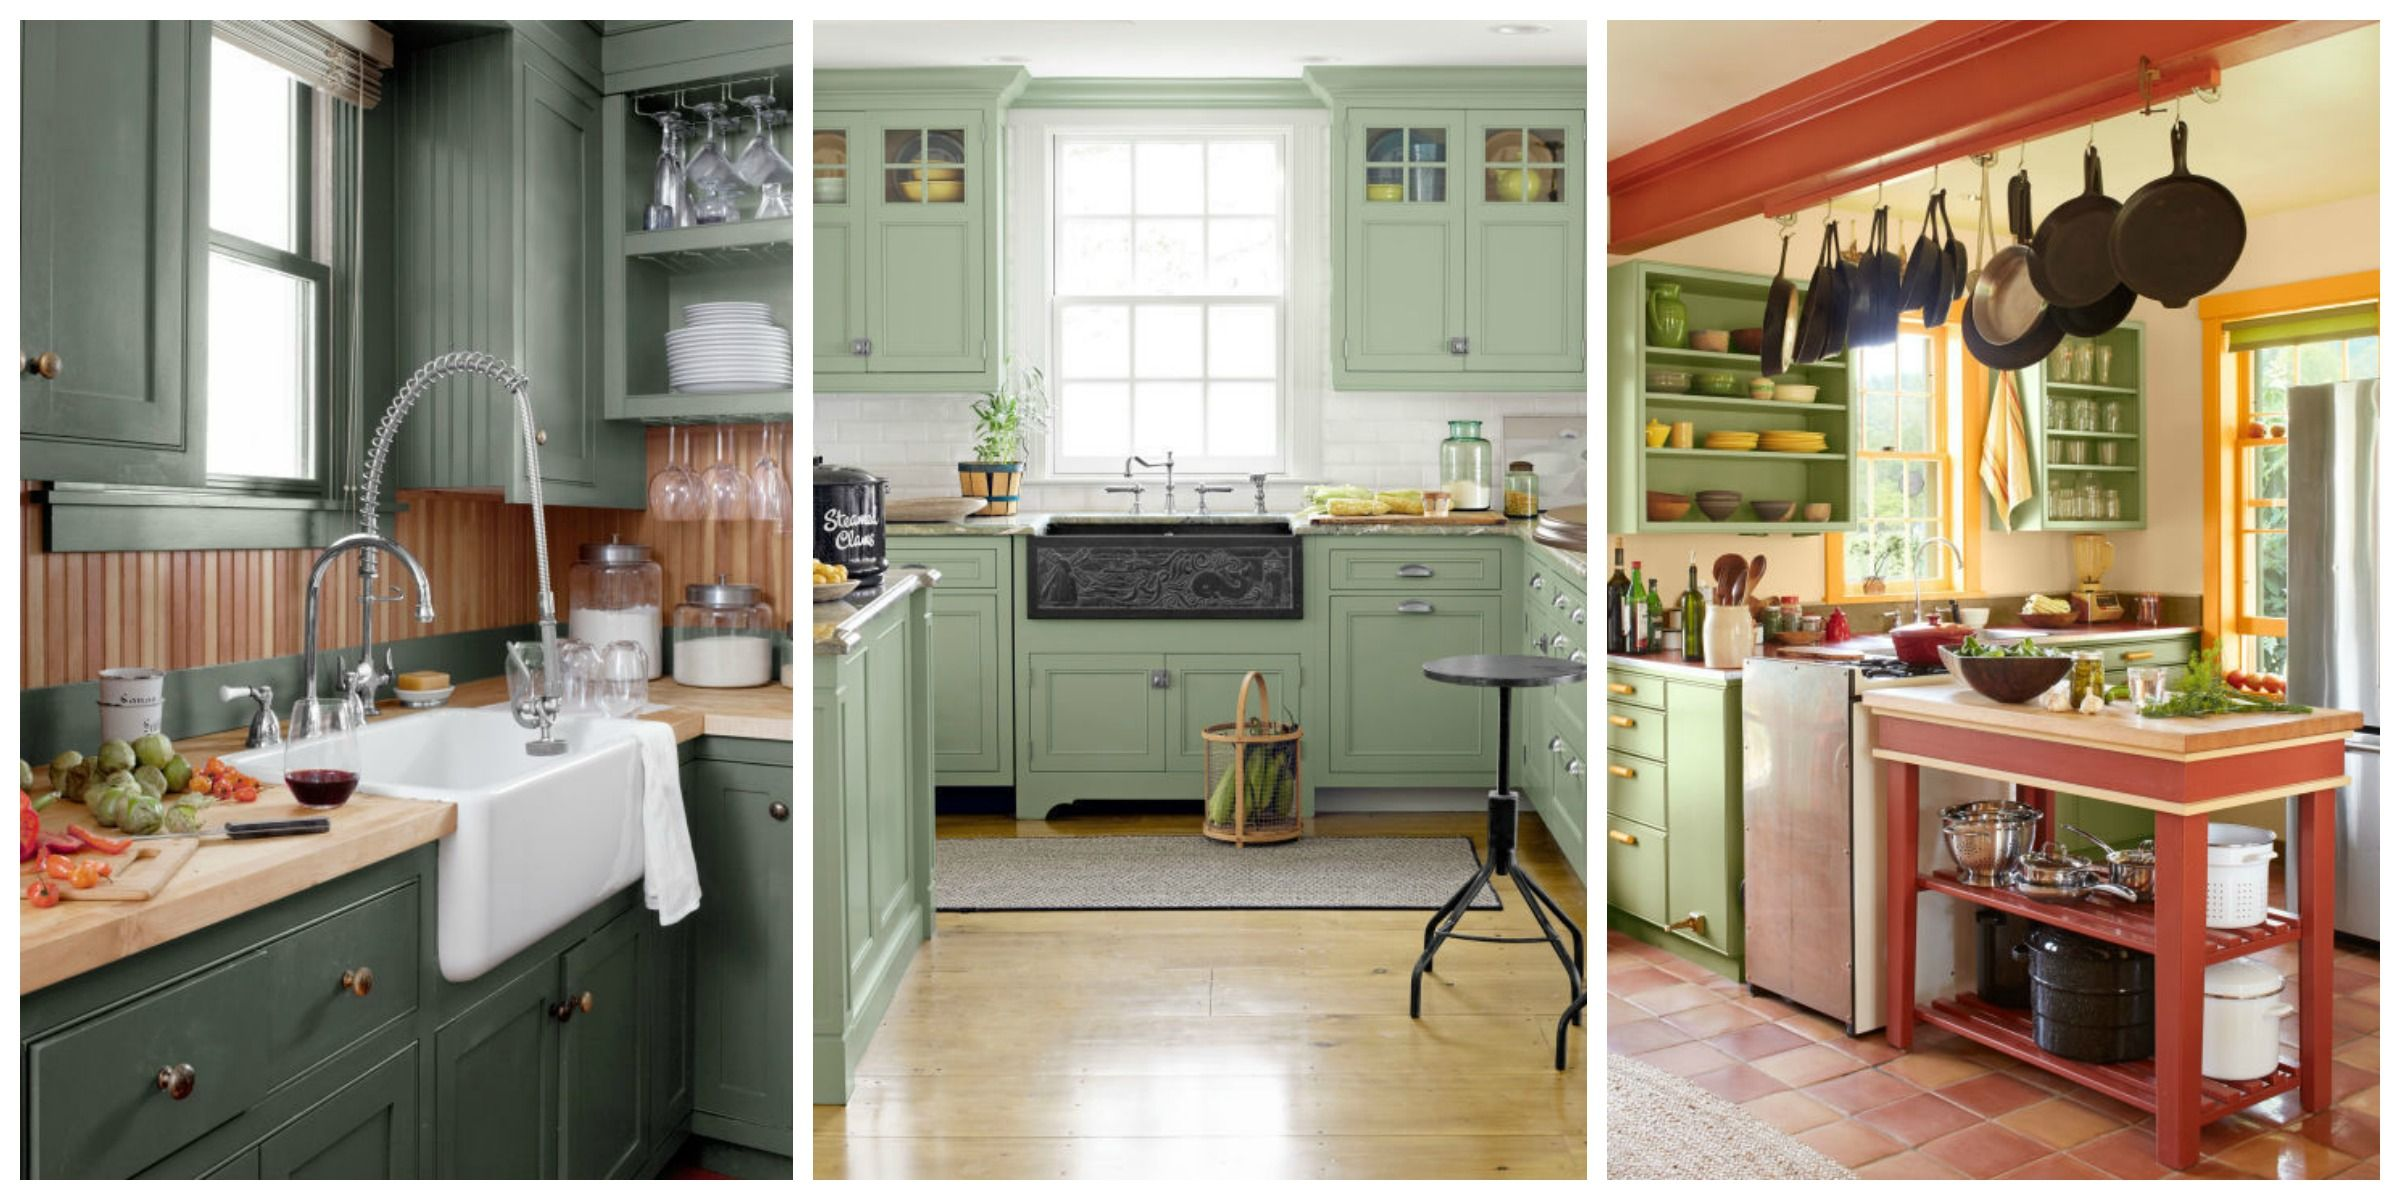 Kitchen Color Design Pictures 10 Green Kitchen Ideas Best Green Paint Colors For Kitchens